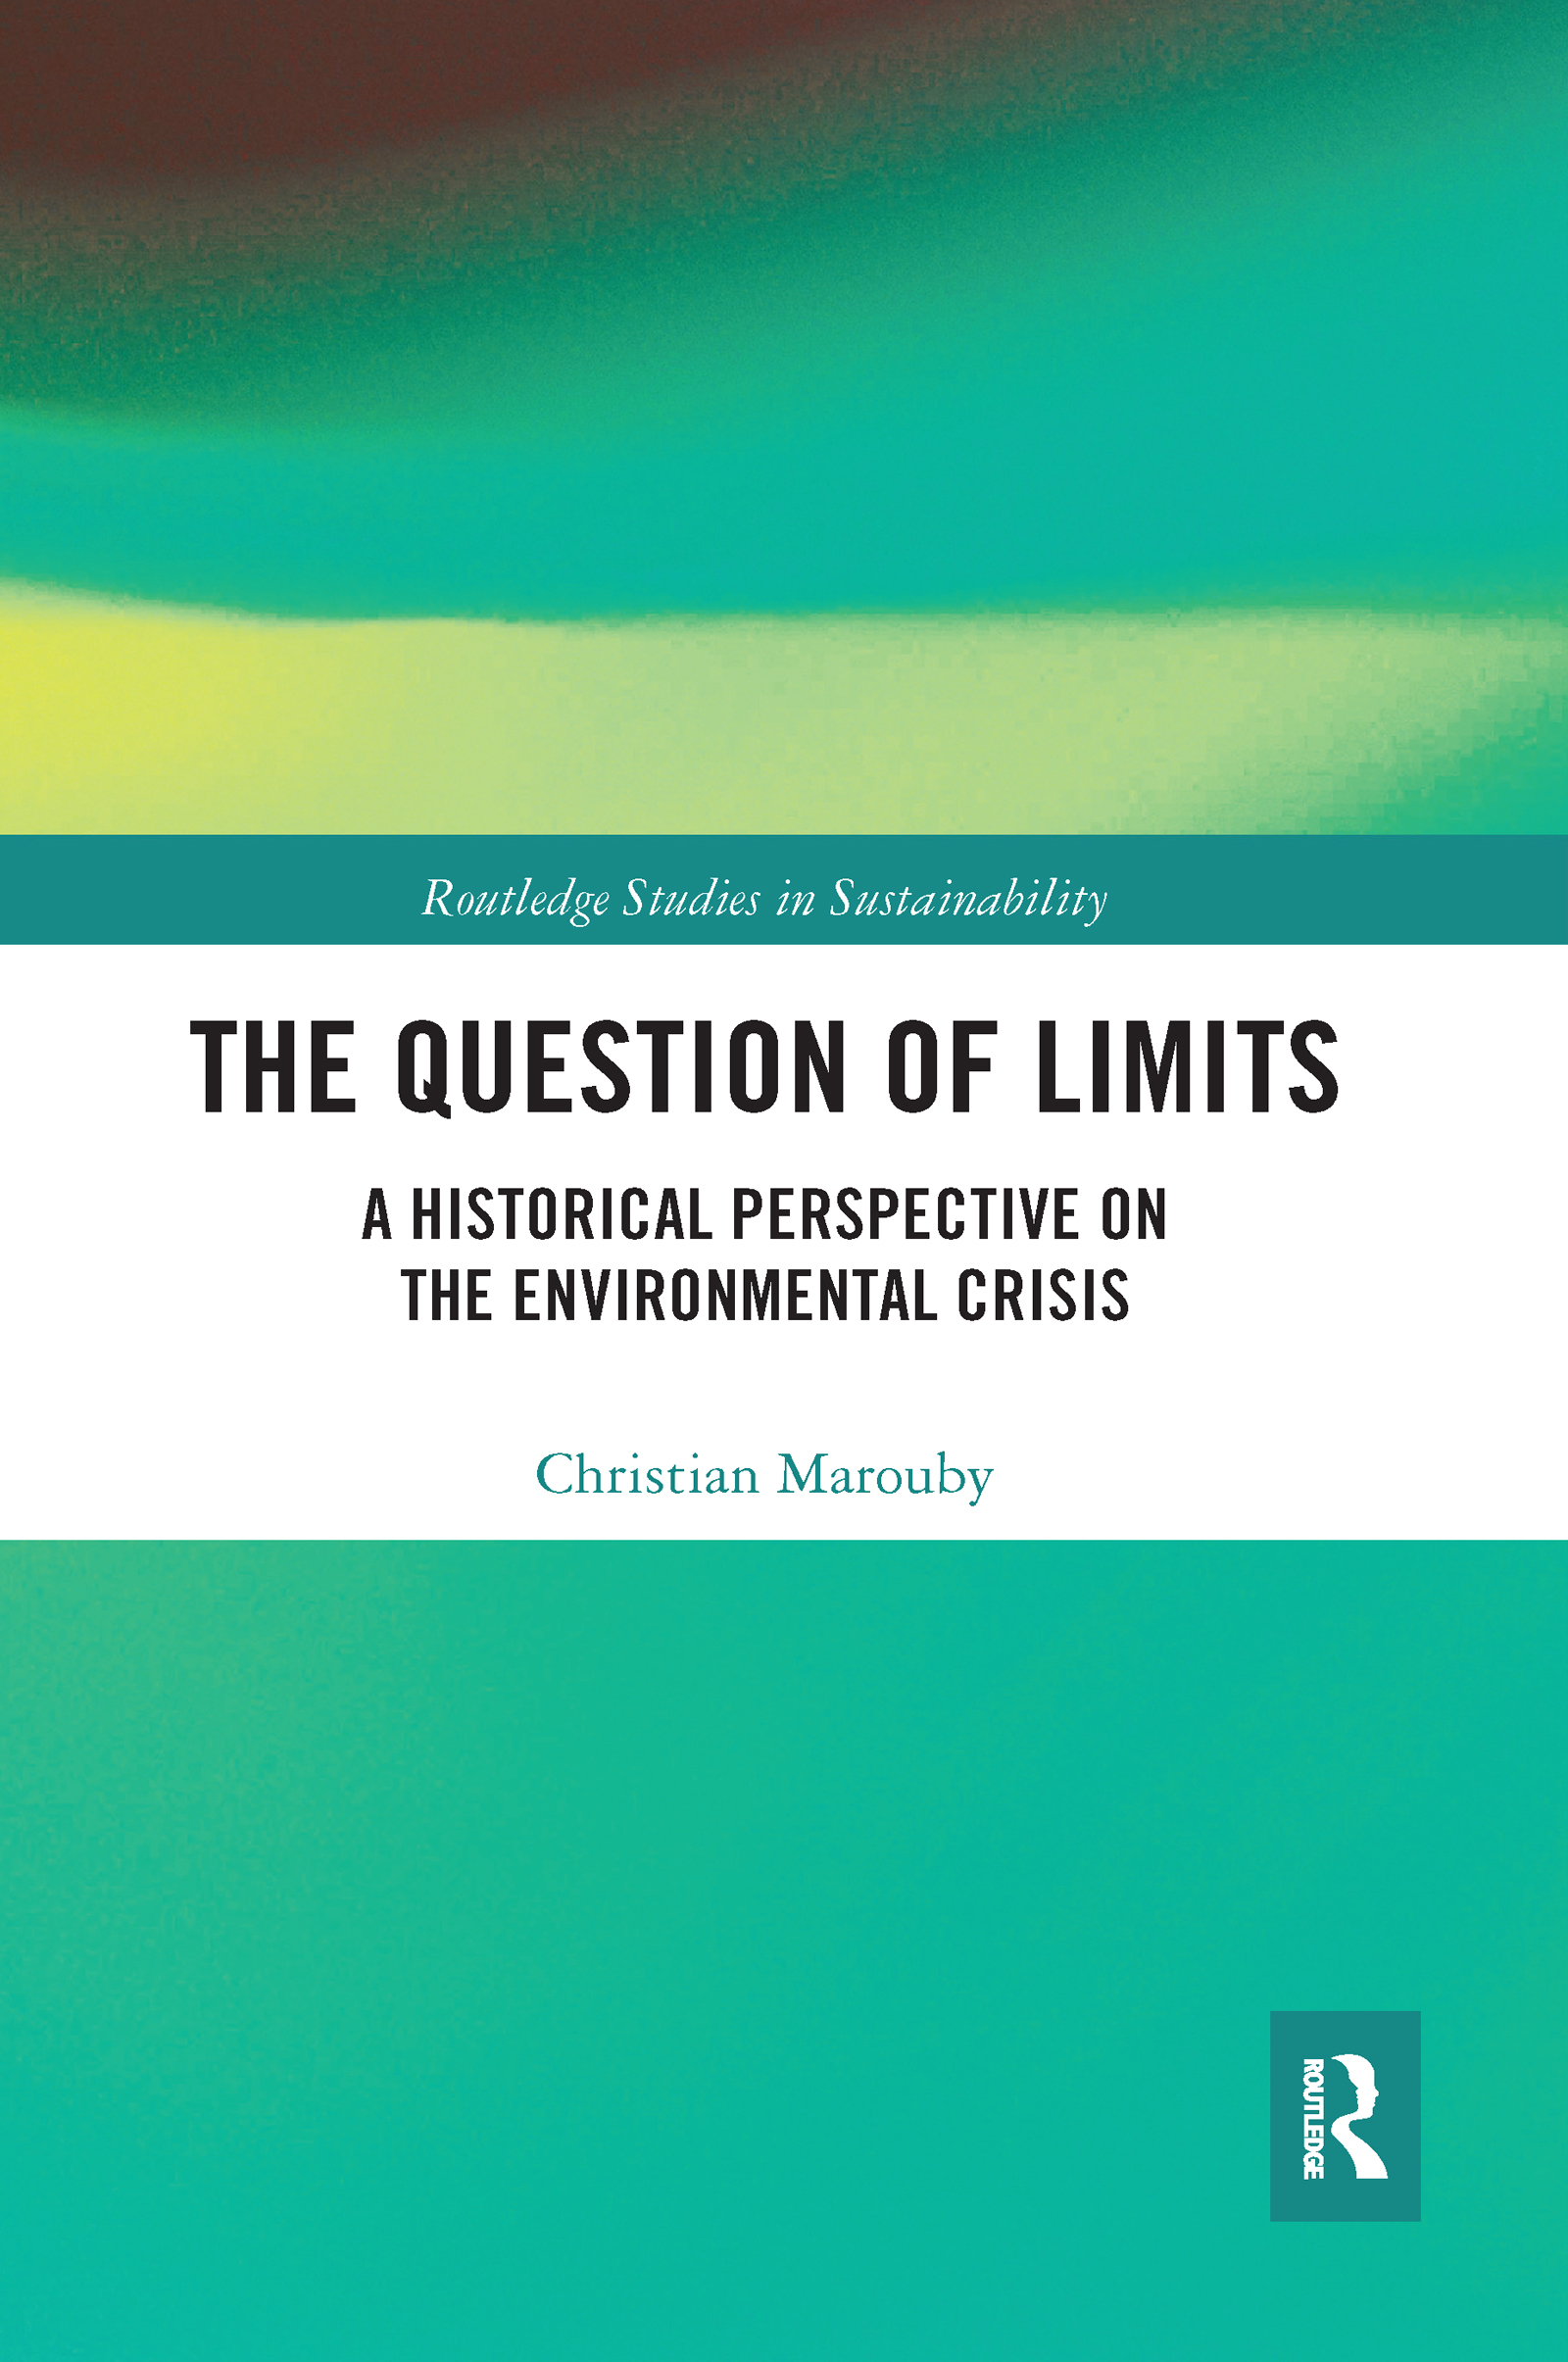 The Question of Limits